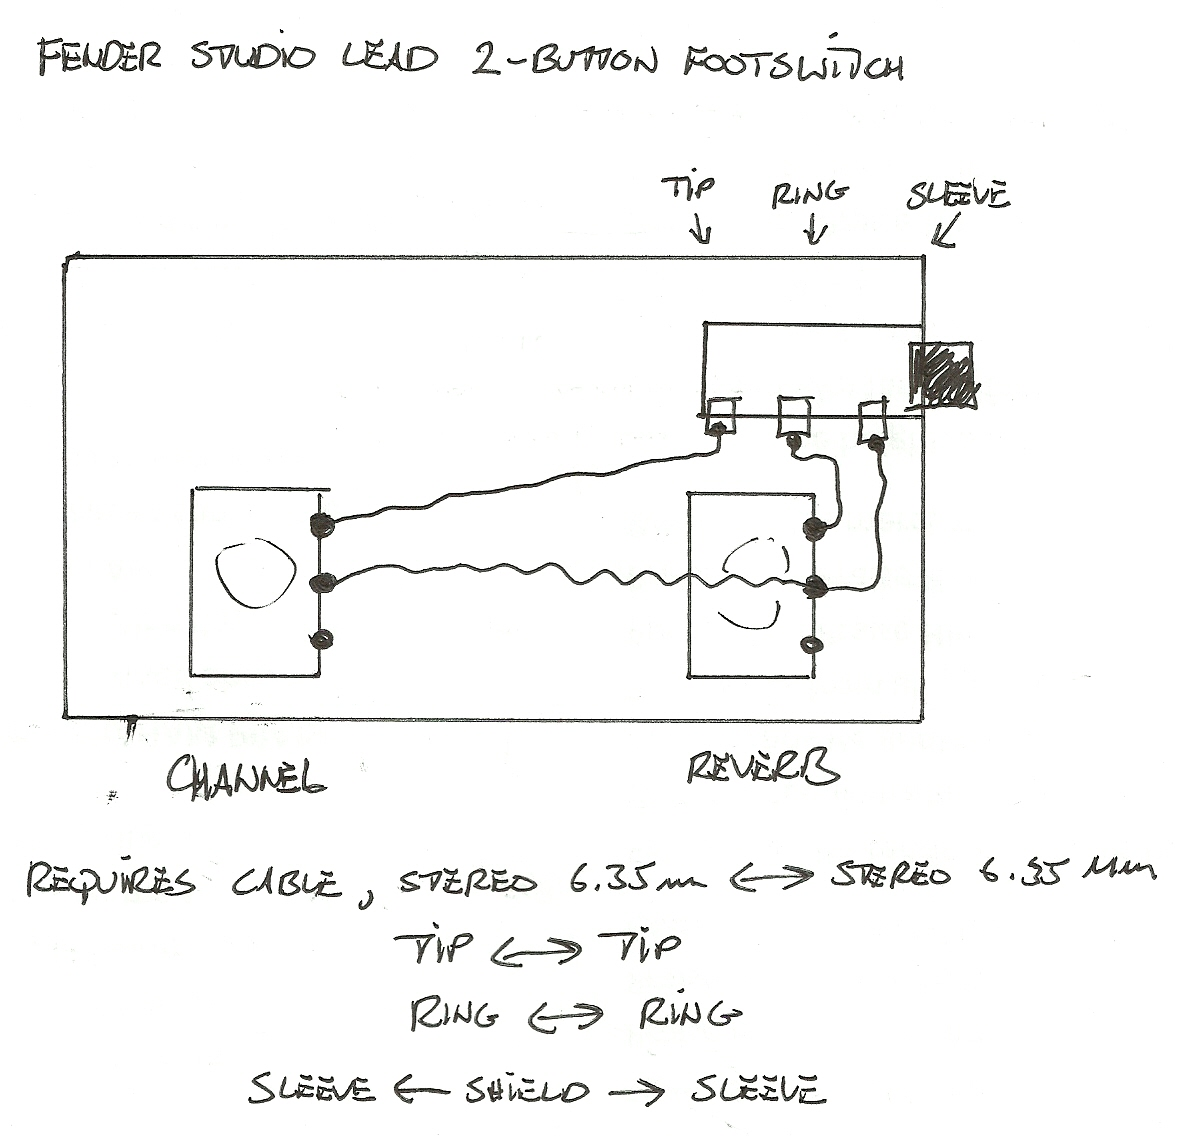 Wiring Diagram For Studio Lead Footswitch Jpg - 14.8.nuerasolar.co